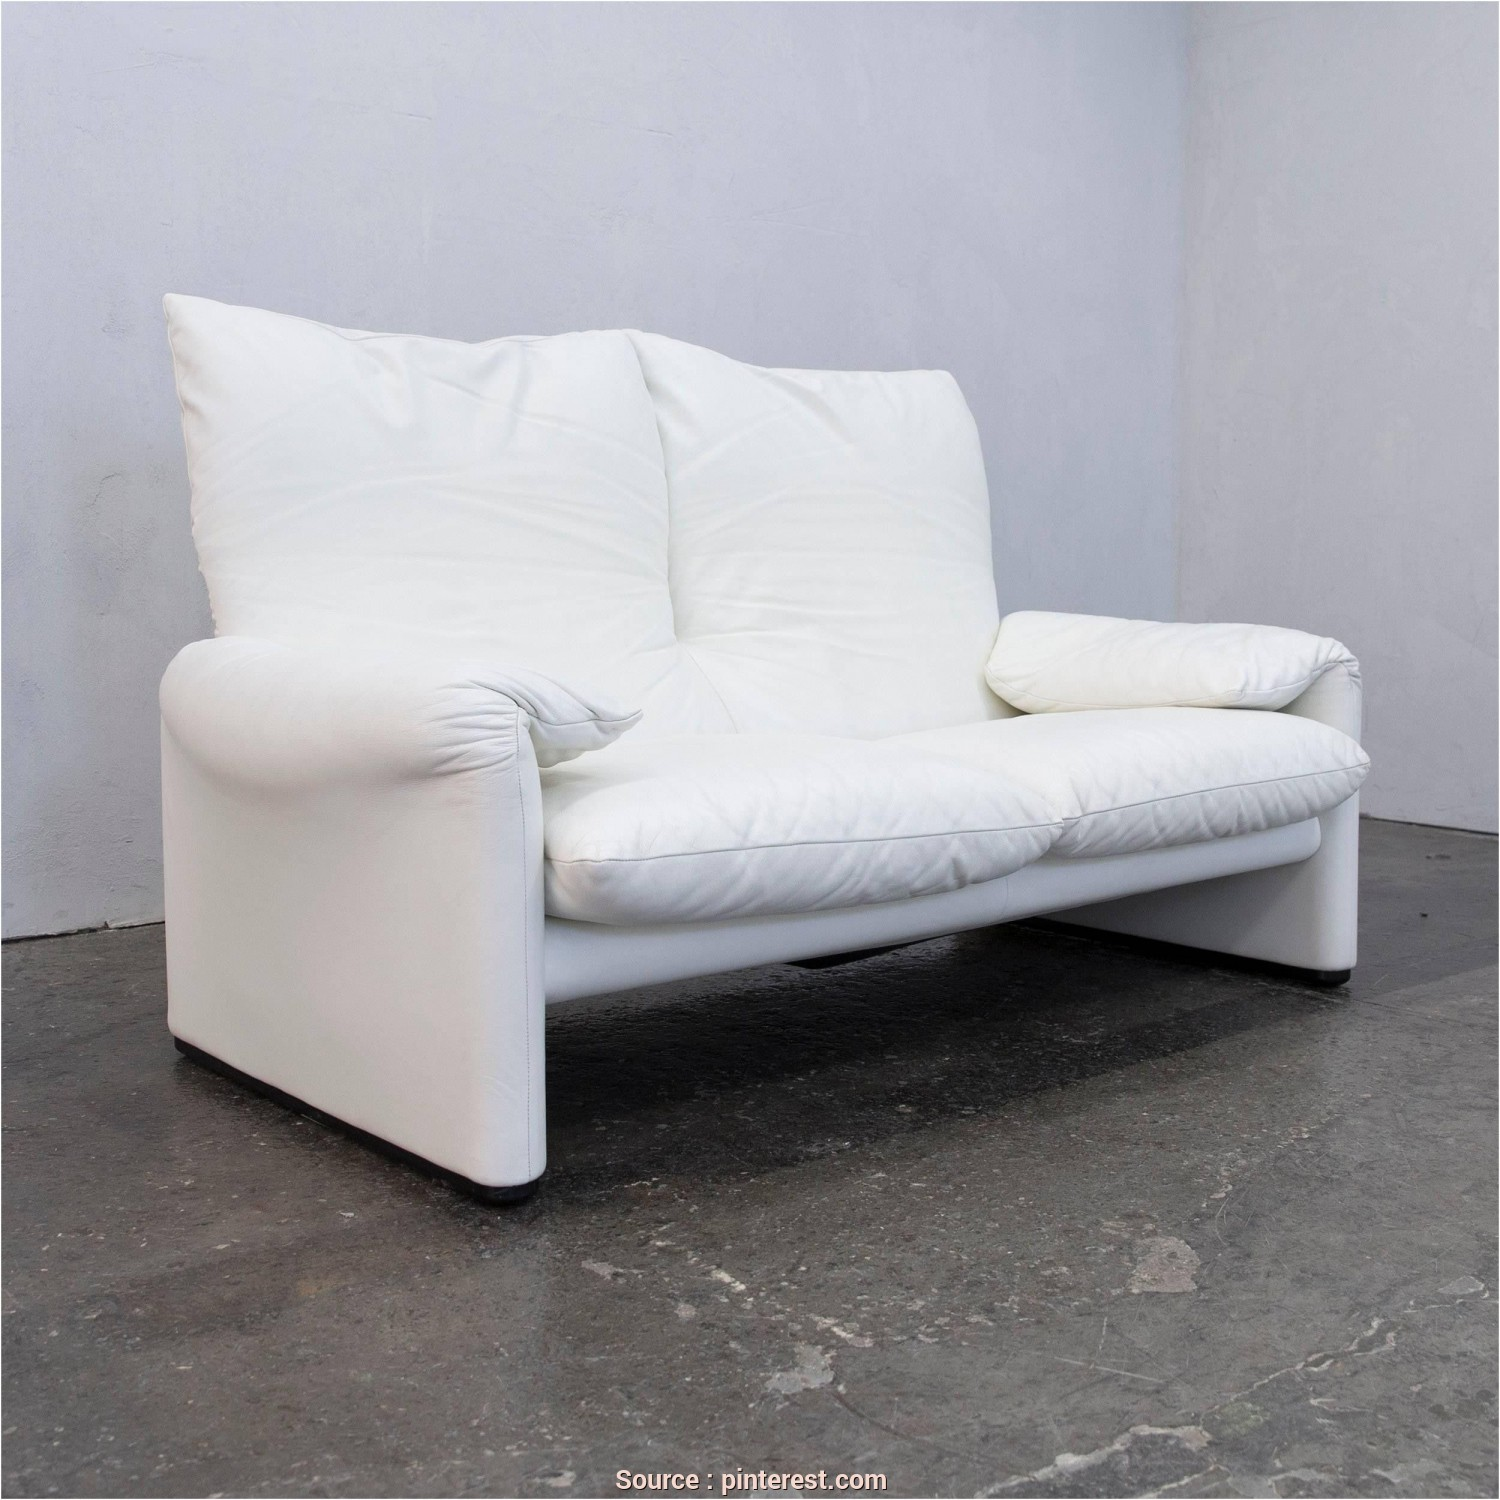 Asarum Ikea Gebraucht, Incredibile Ikea Sofa Grau, Ikea Sofas, Faux Leather Sofa, Cheap Sofas, Couch Furniture